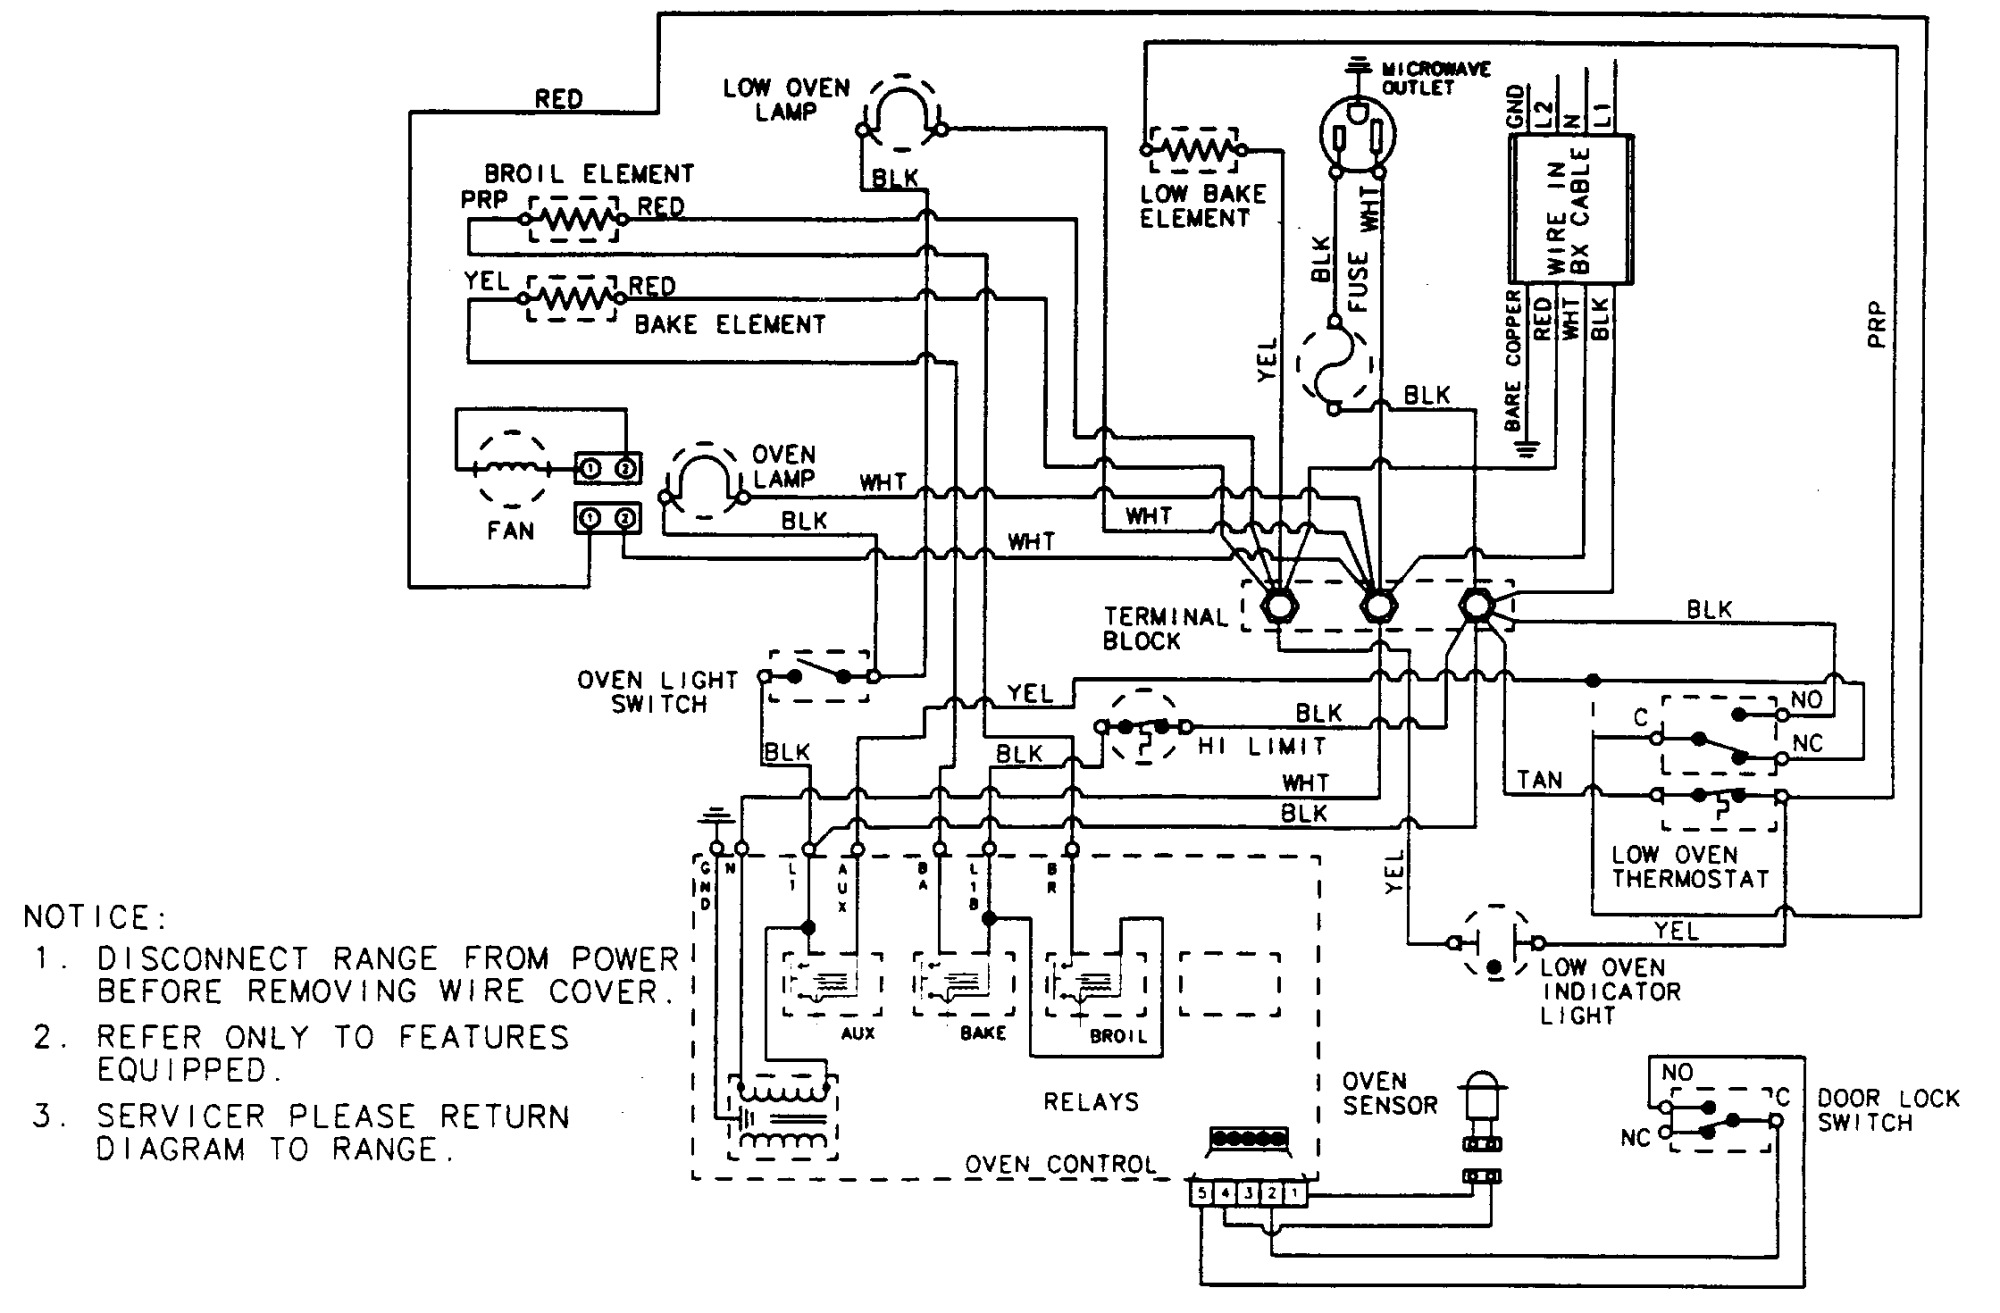 hight resolution of basic oven wiring diagram wiring diagram todays microwave oven circuit diagram oven wiring diagram